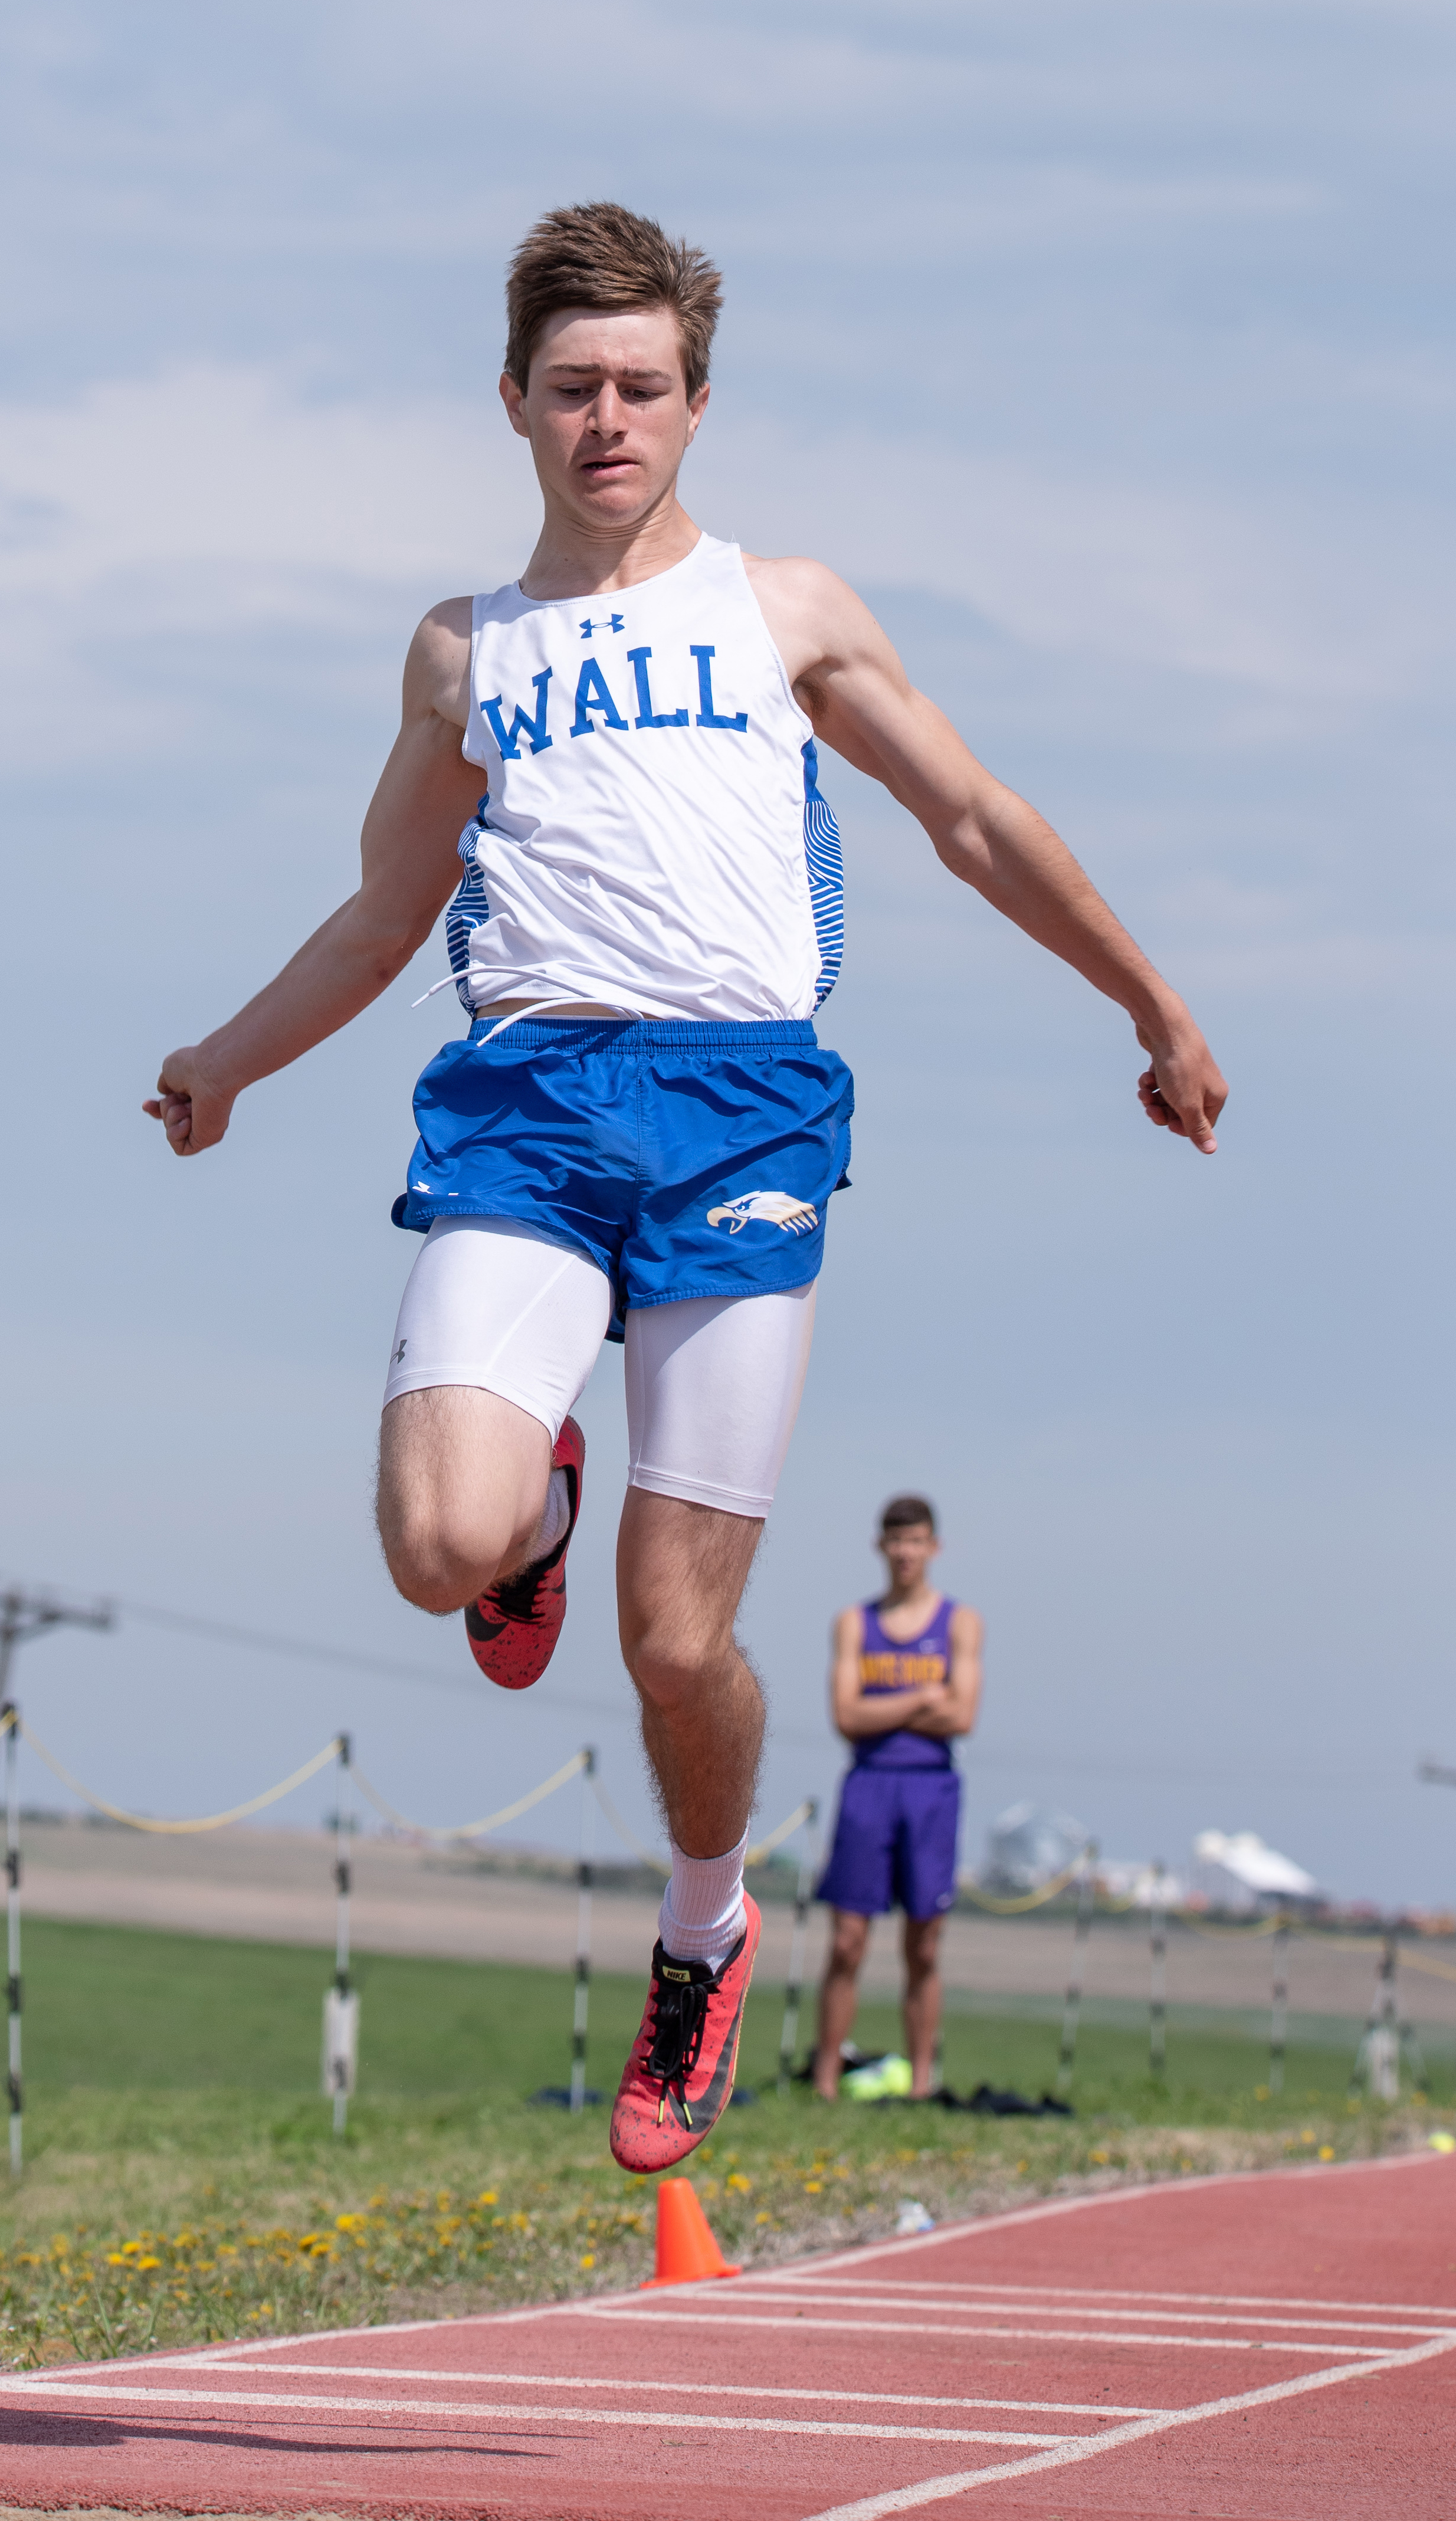 """- Believe this is Tack Tines from Wall (Let me know if I'm wrong) but the sophomore has the 4th best long jump in the B ranks - 21'4""""He also has the 11th ranked triple jump so far this season.Placed in the triple jump and 200 meters as a freshman one year ago."""